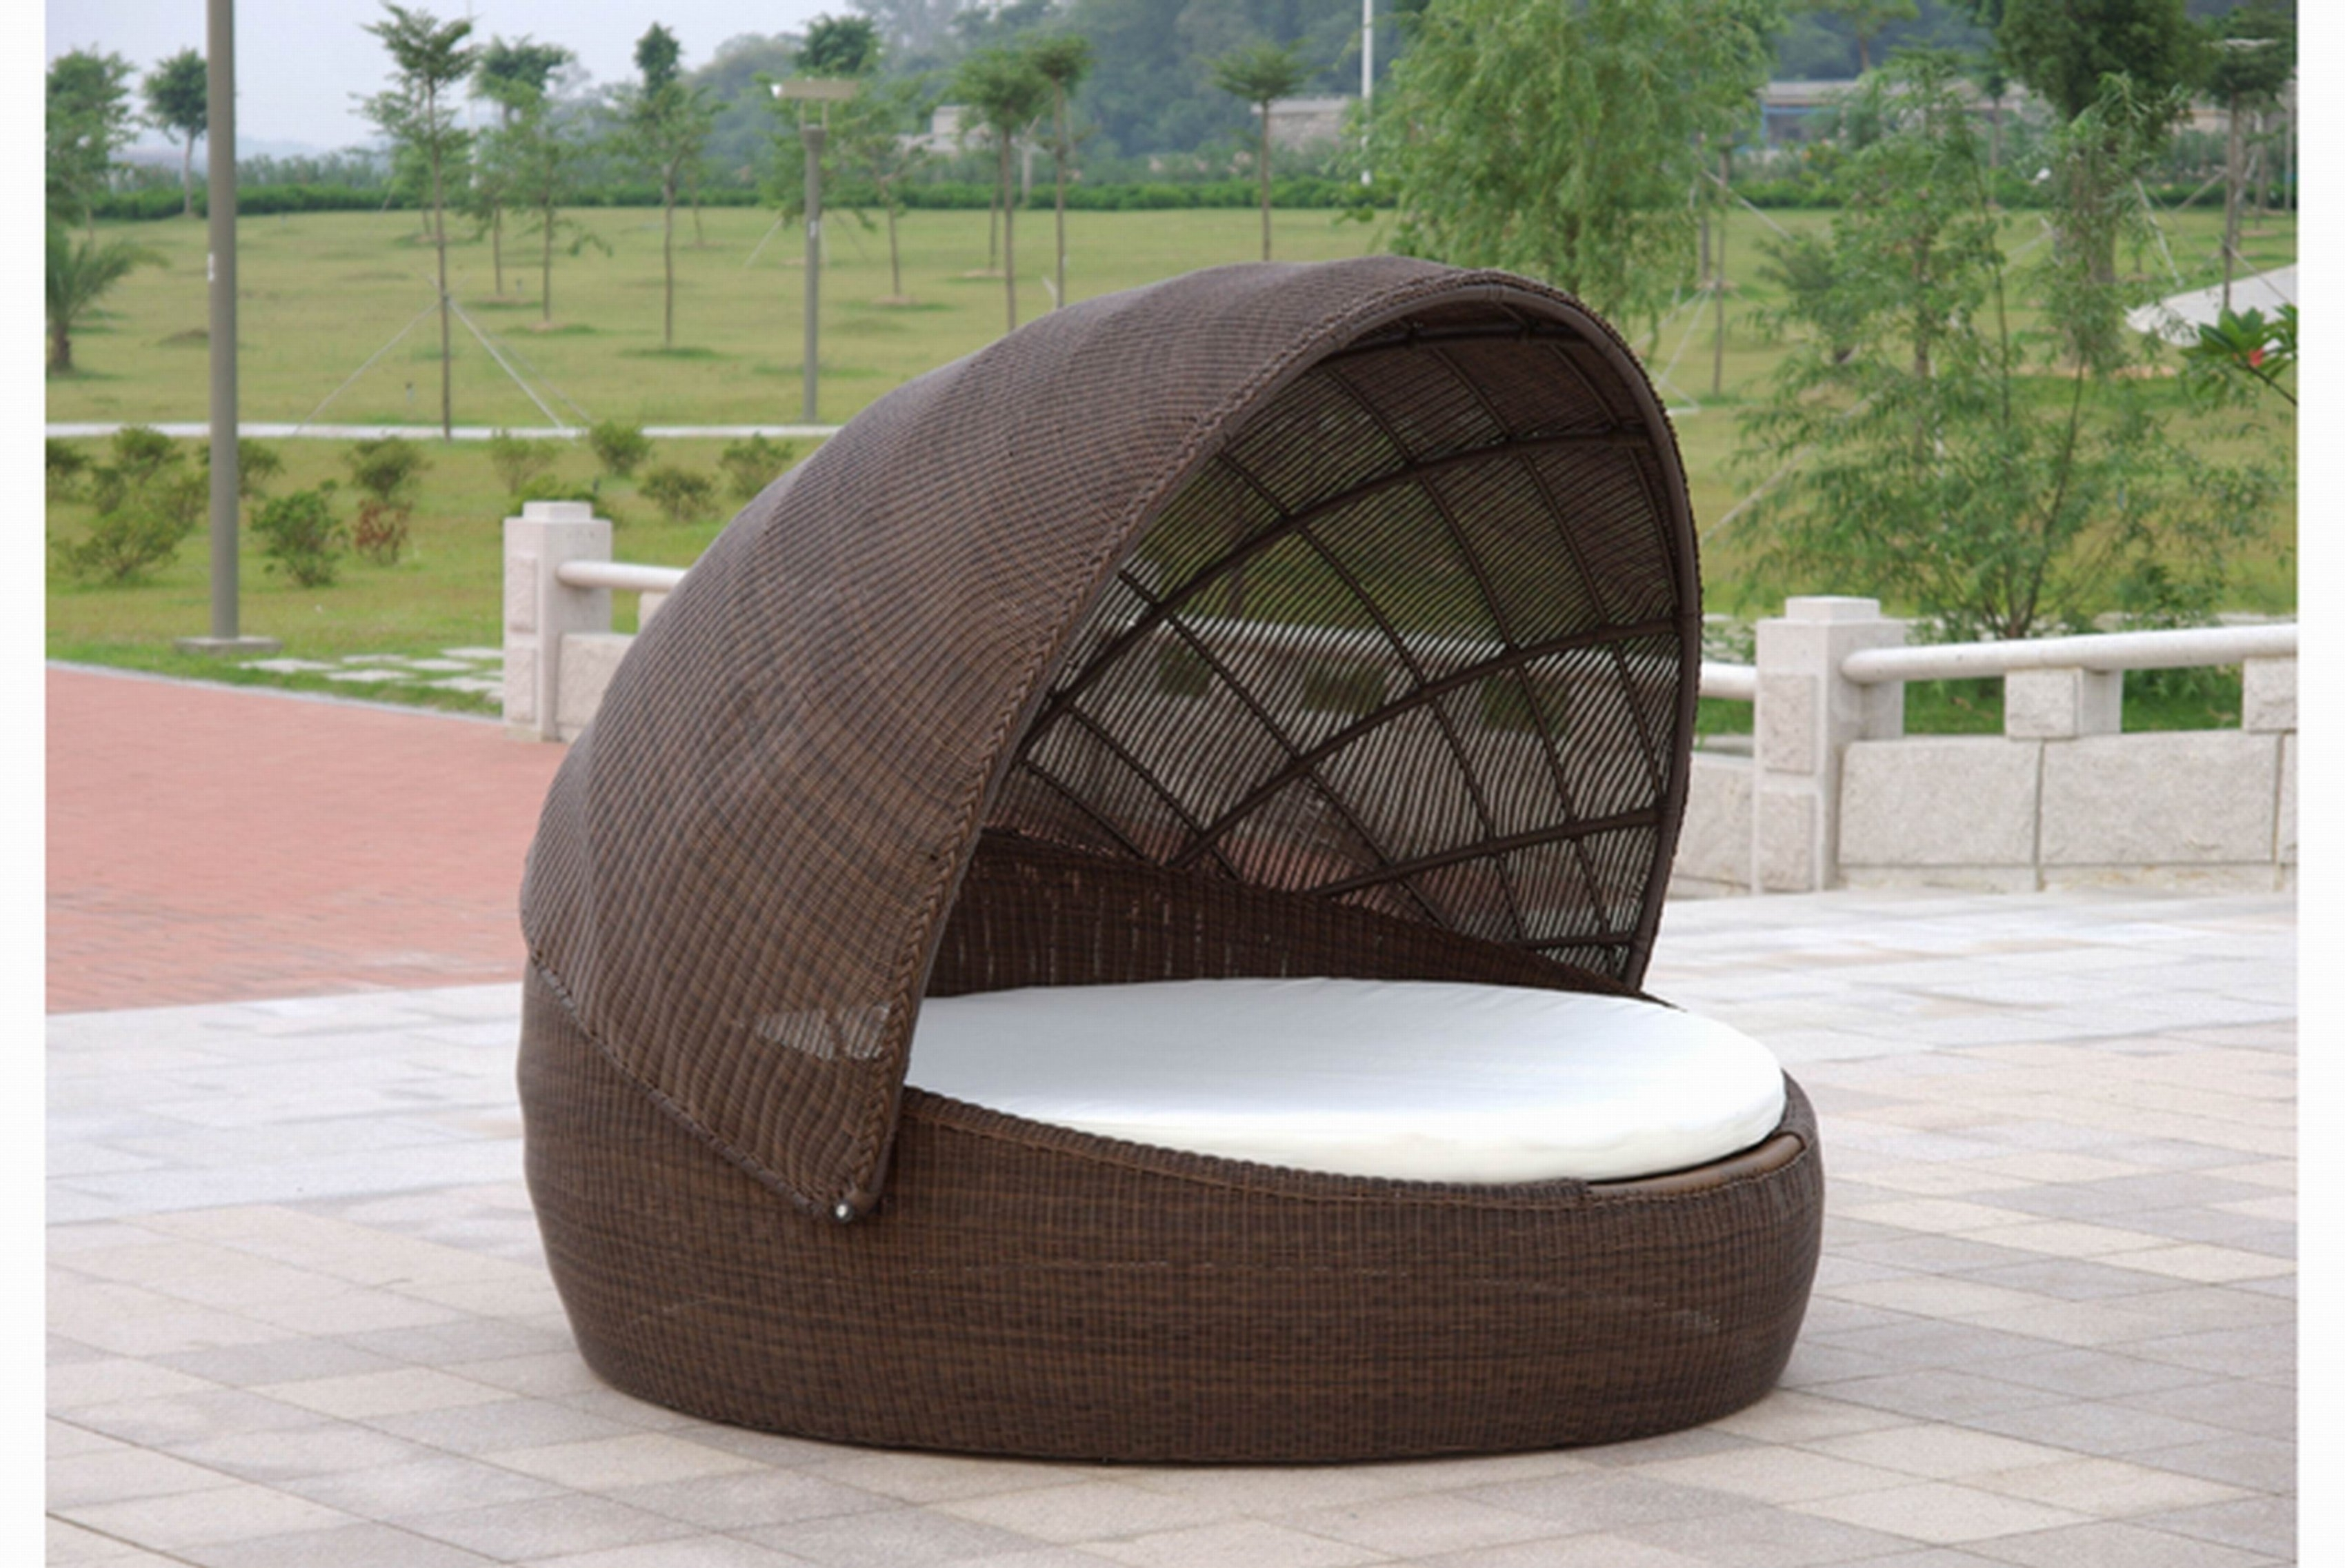 Widely Used Outdoor Sofas With Canopy Within Chaise Lounge Outdoor With Canopy With Canopy Of And Brown (View 15 of 15)